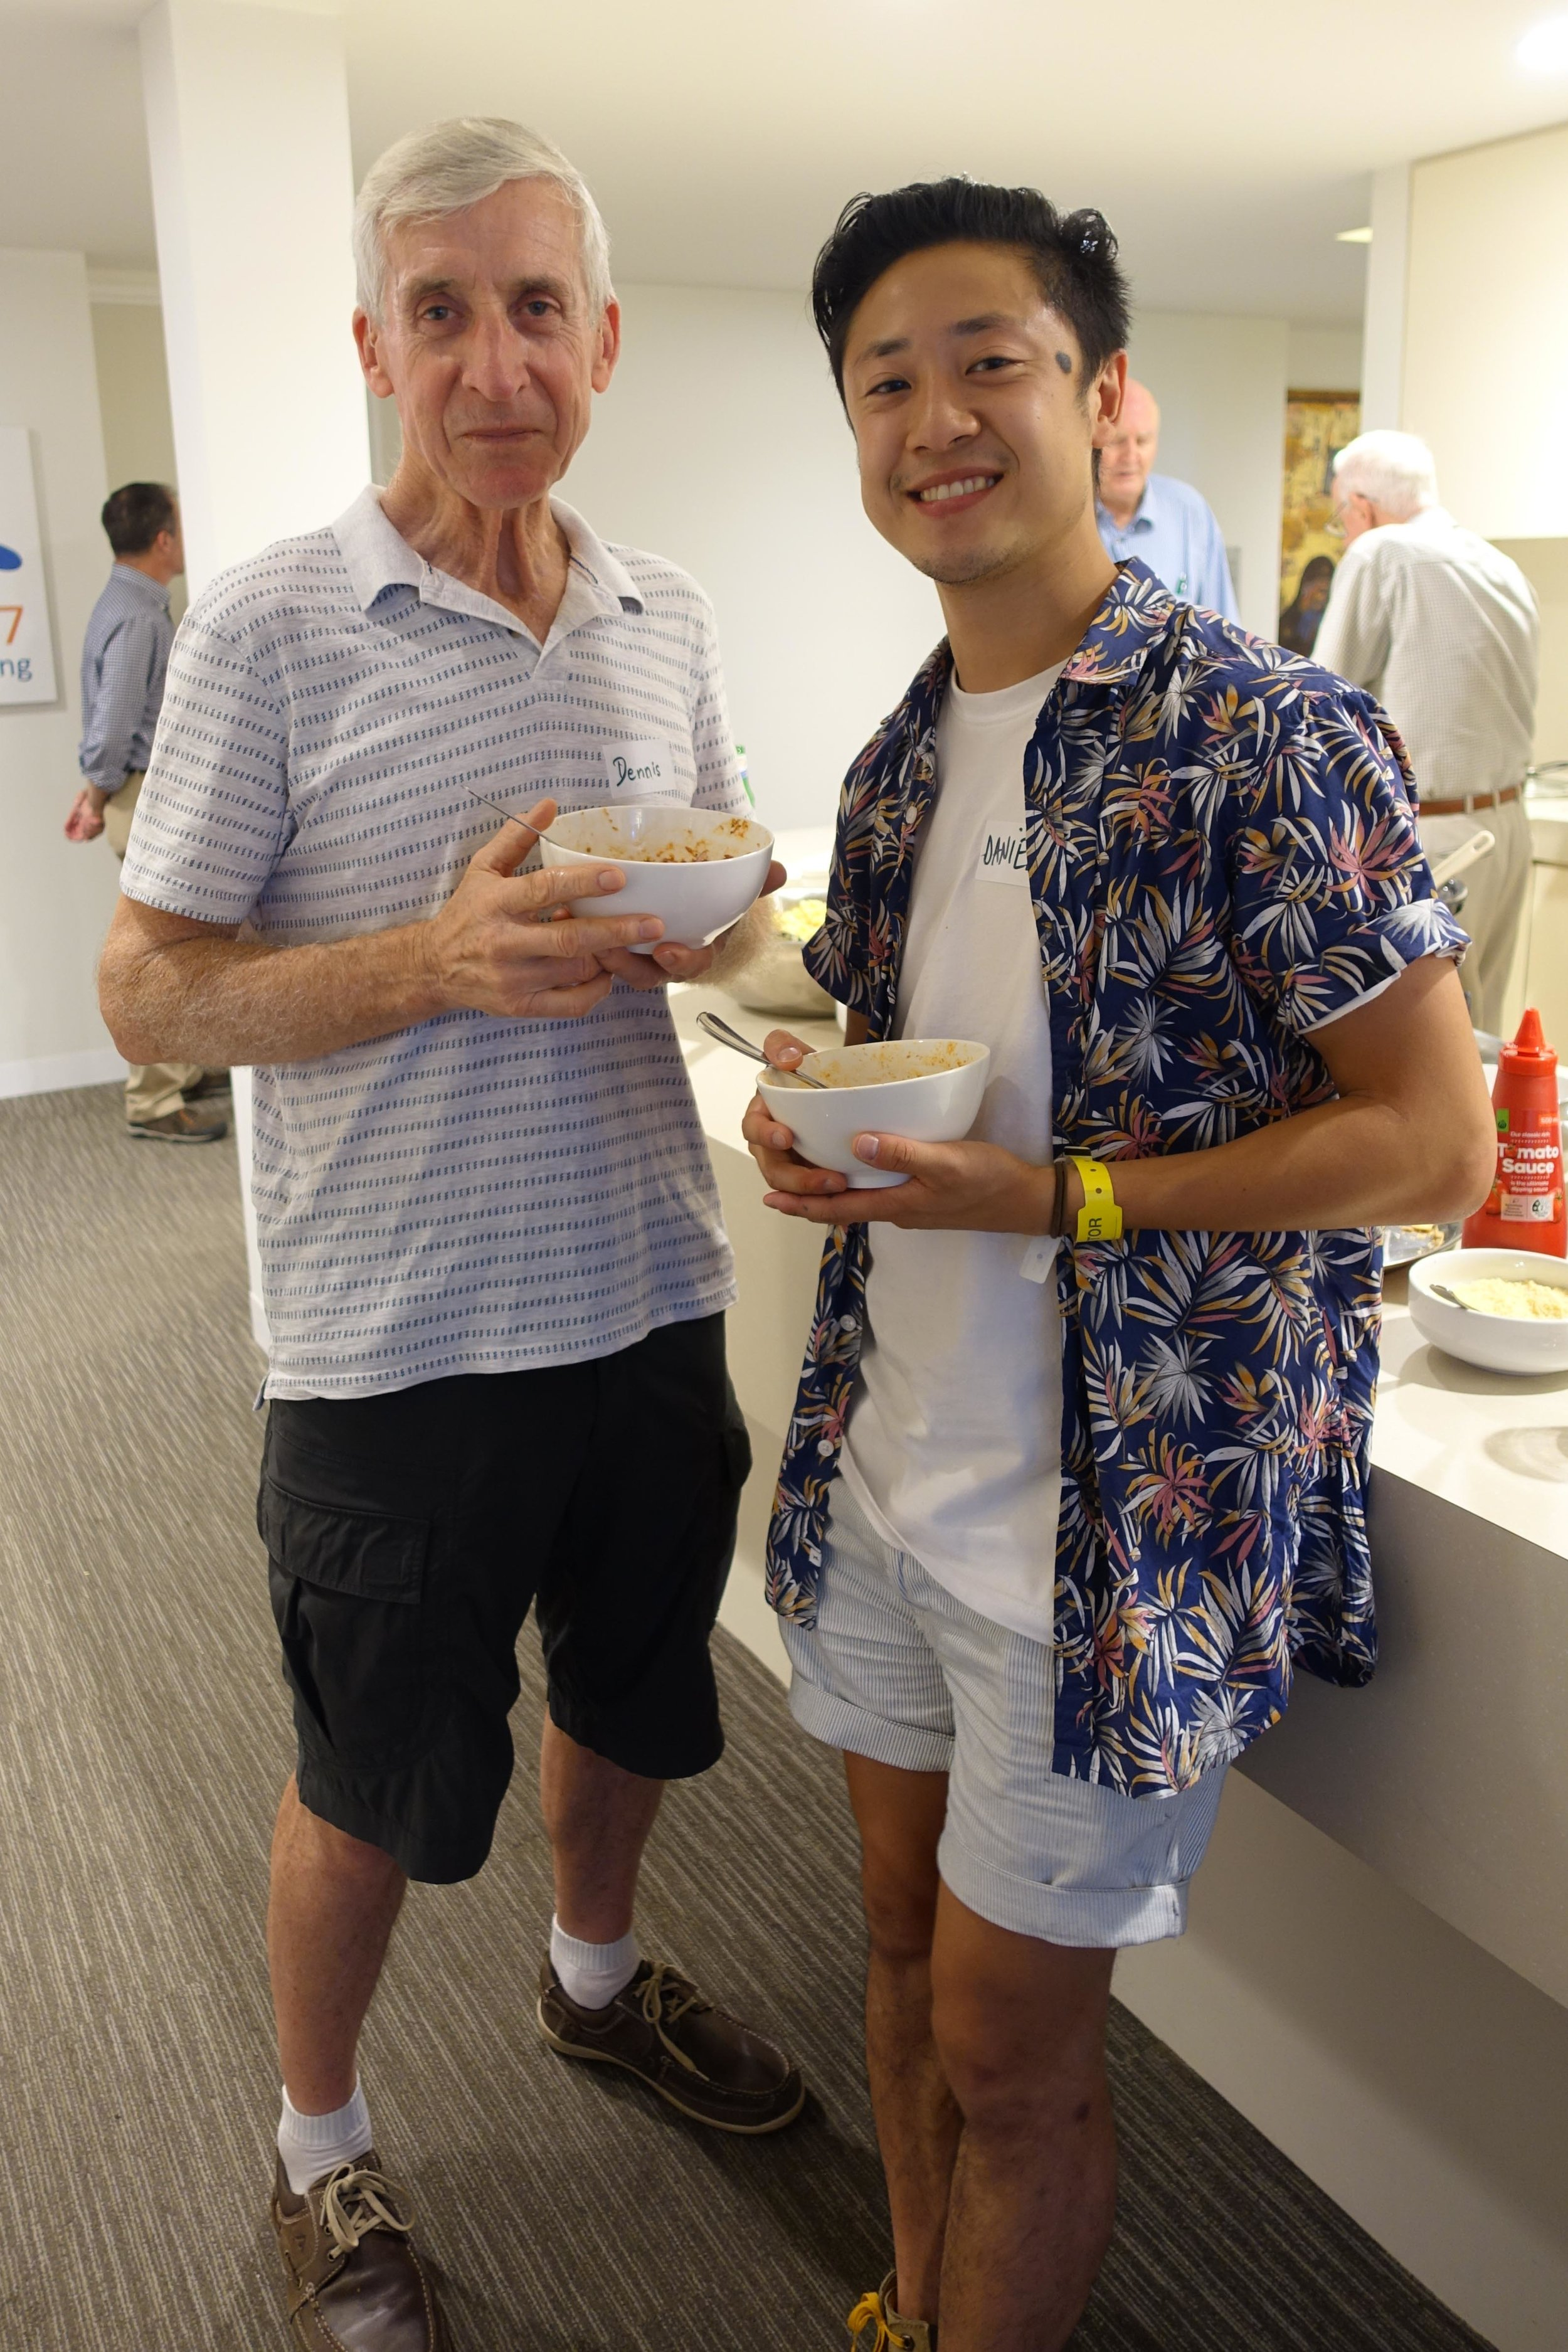 Br Dennis Cooper and Daniel Nguyen chatting over a bowl of pasta